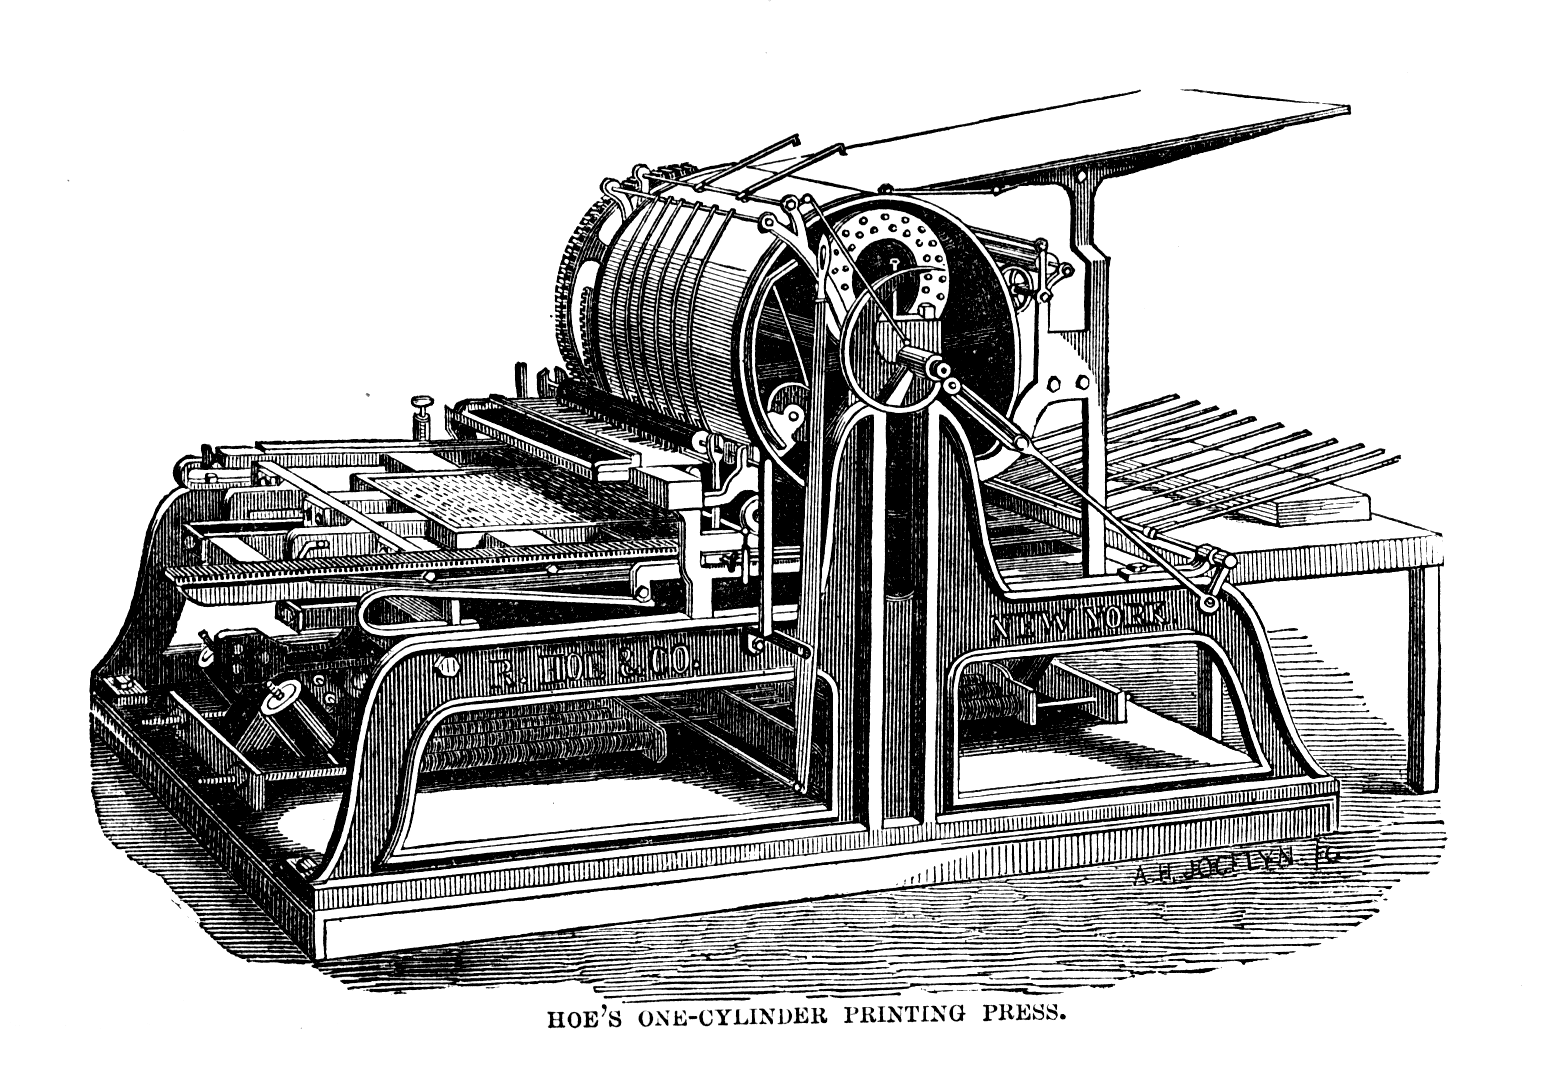 The machines have been upgraded, but printing remains popular. Wikimedia Commons